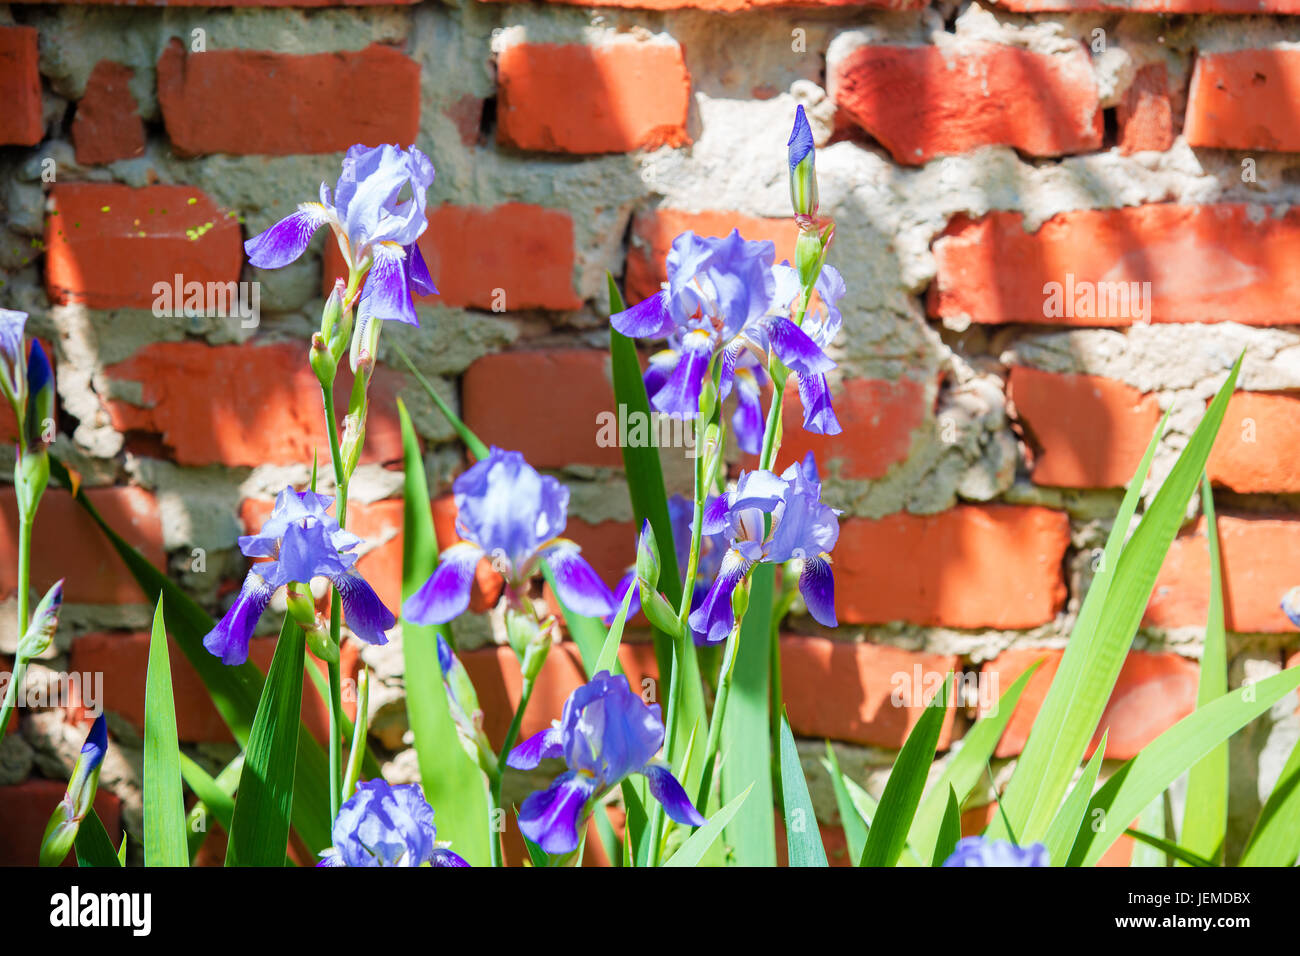 Flowers In The Wall Garden - Iris flowers in the garden against a brick wall